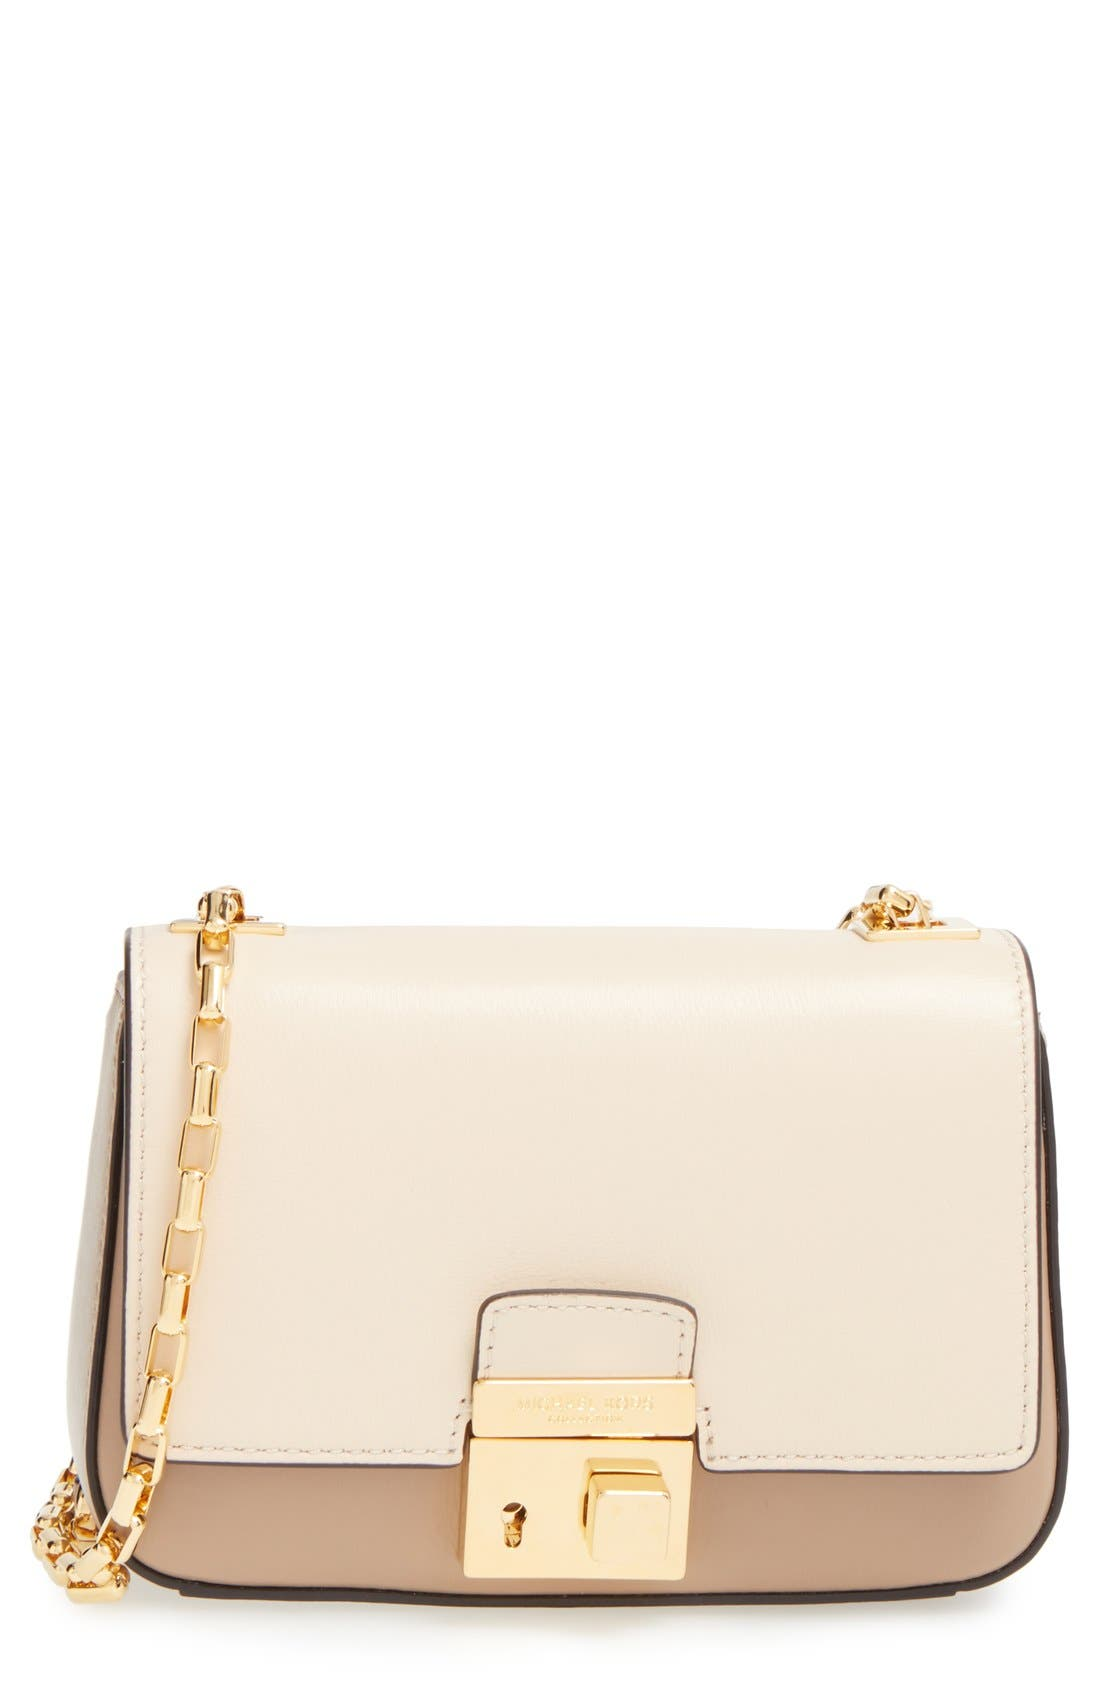 Main Image - Michael Kors 'Small Gia' Chain Strap Leather Shoulder Bag